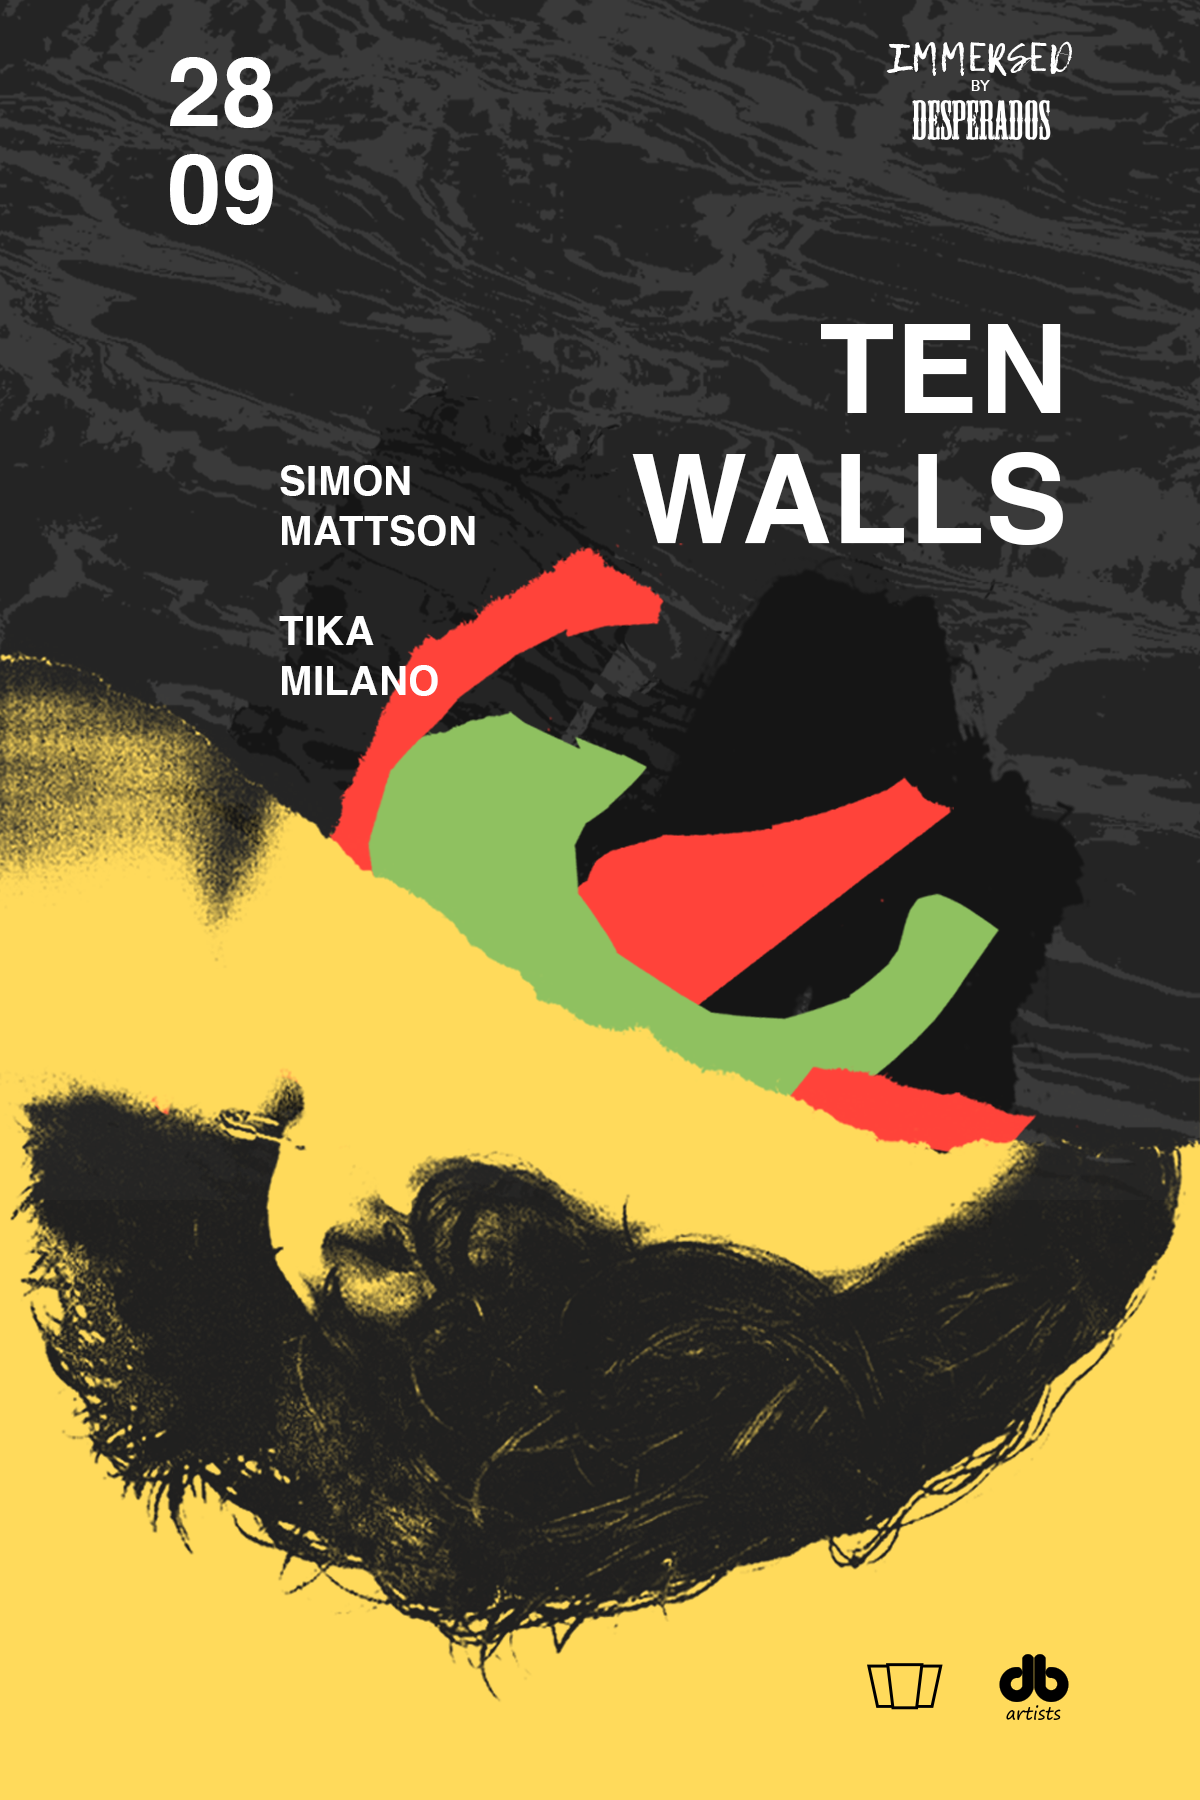 ten walls immersed chillout chill music desperados klub smolna 38 warszawa techno house deep selekcja jak sie ubrac bramka bilety dj set wydarzenie